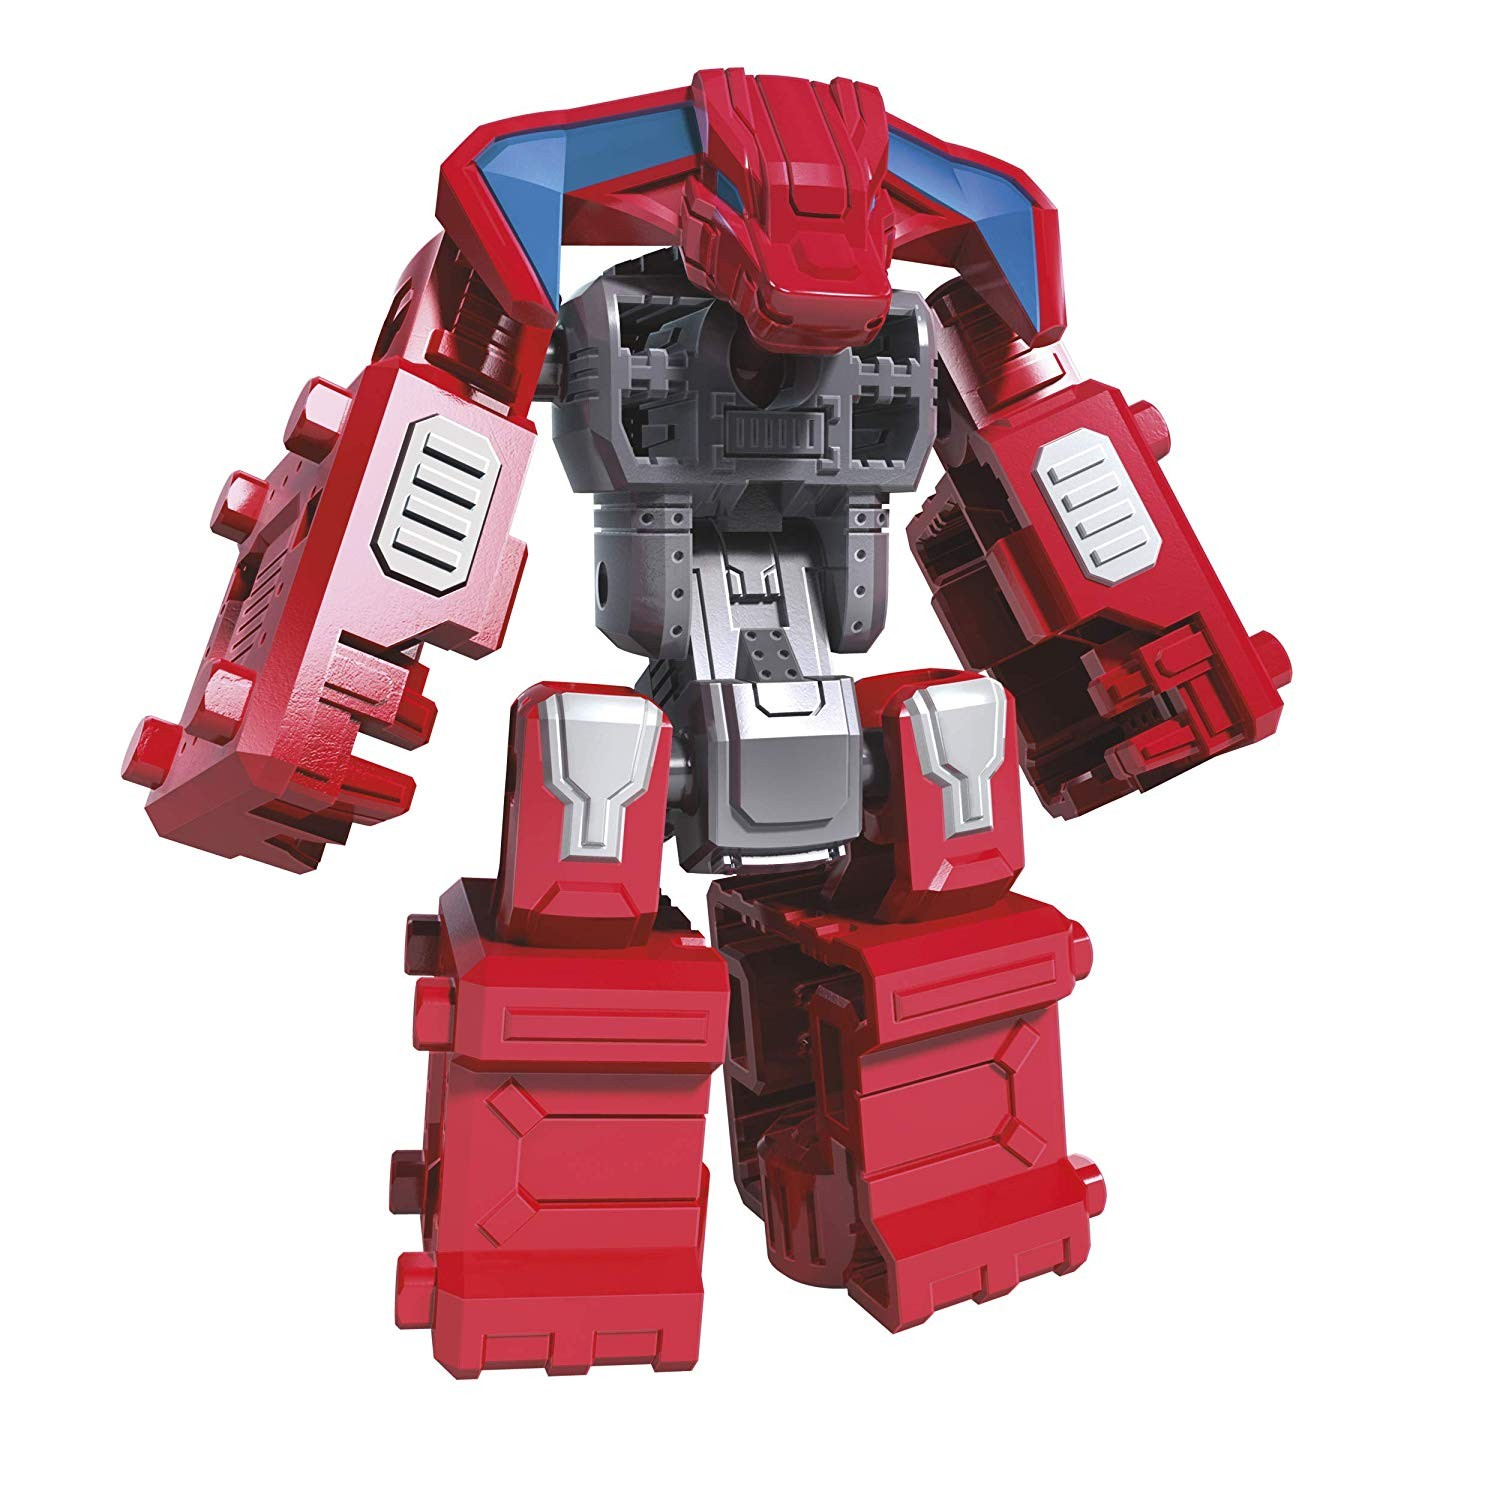 Transformers News: Transformers Siege Caliburst and Smashdown pre-orders on Amazon.com